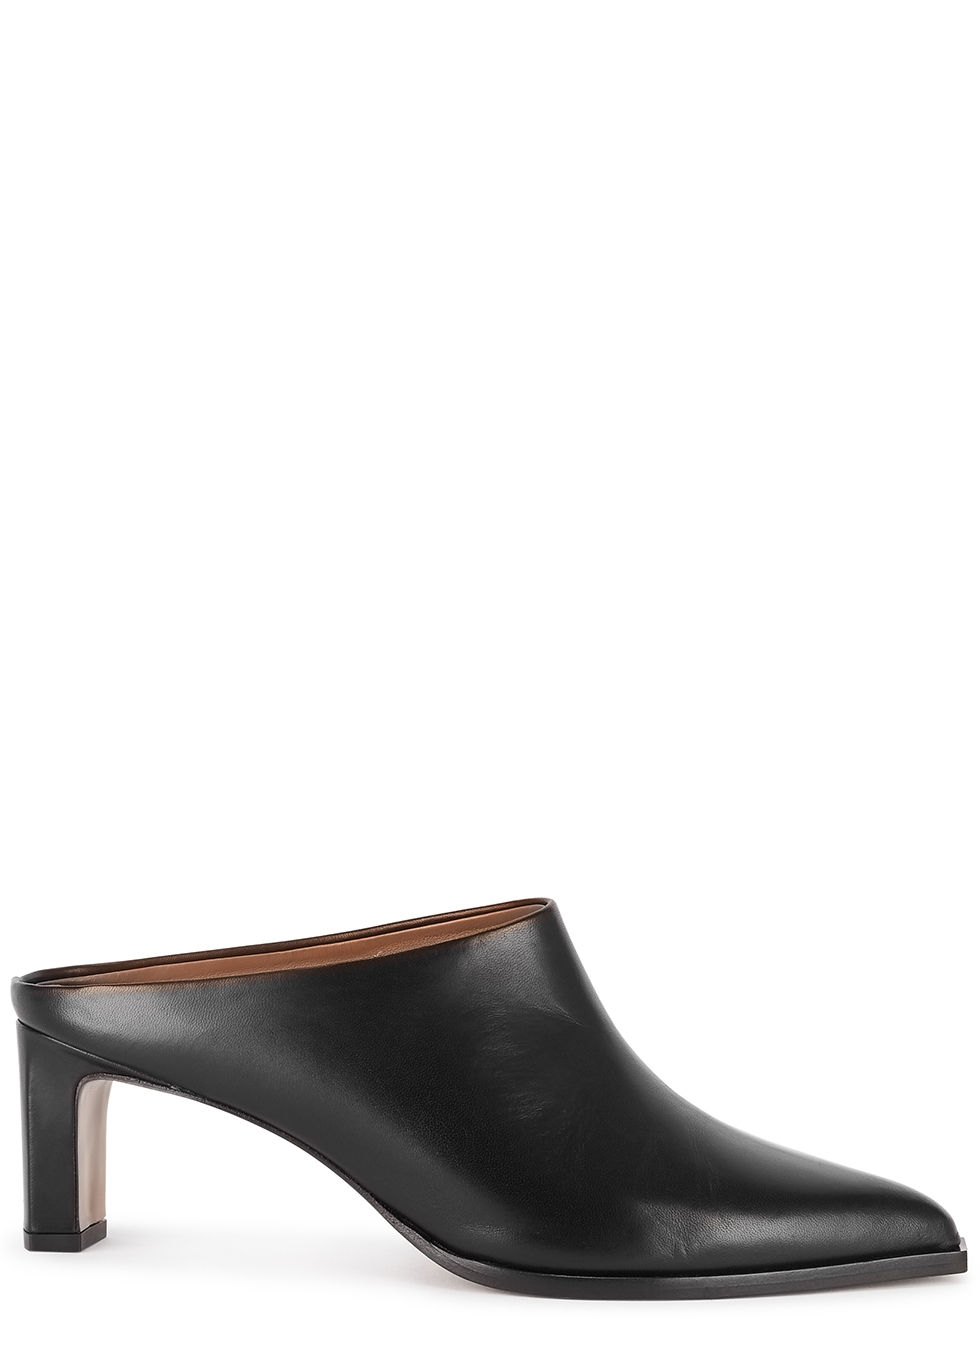 Fave 65 black leather mules